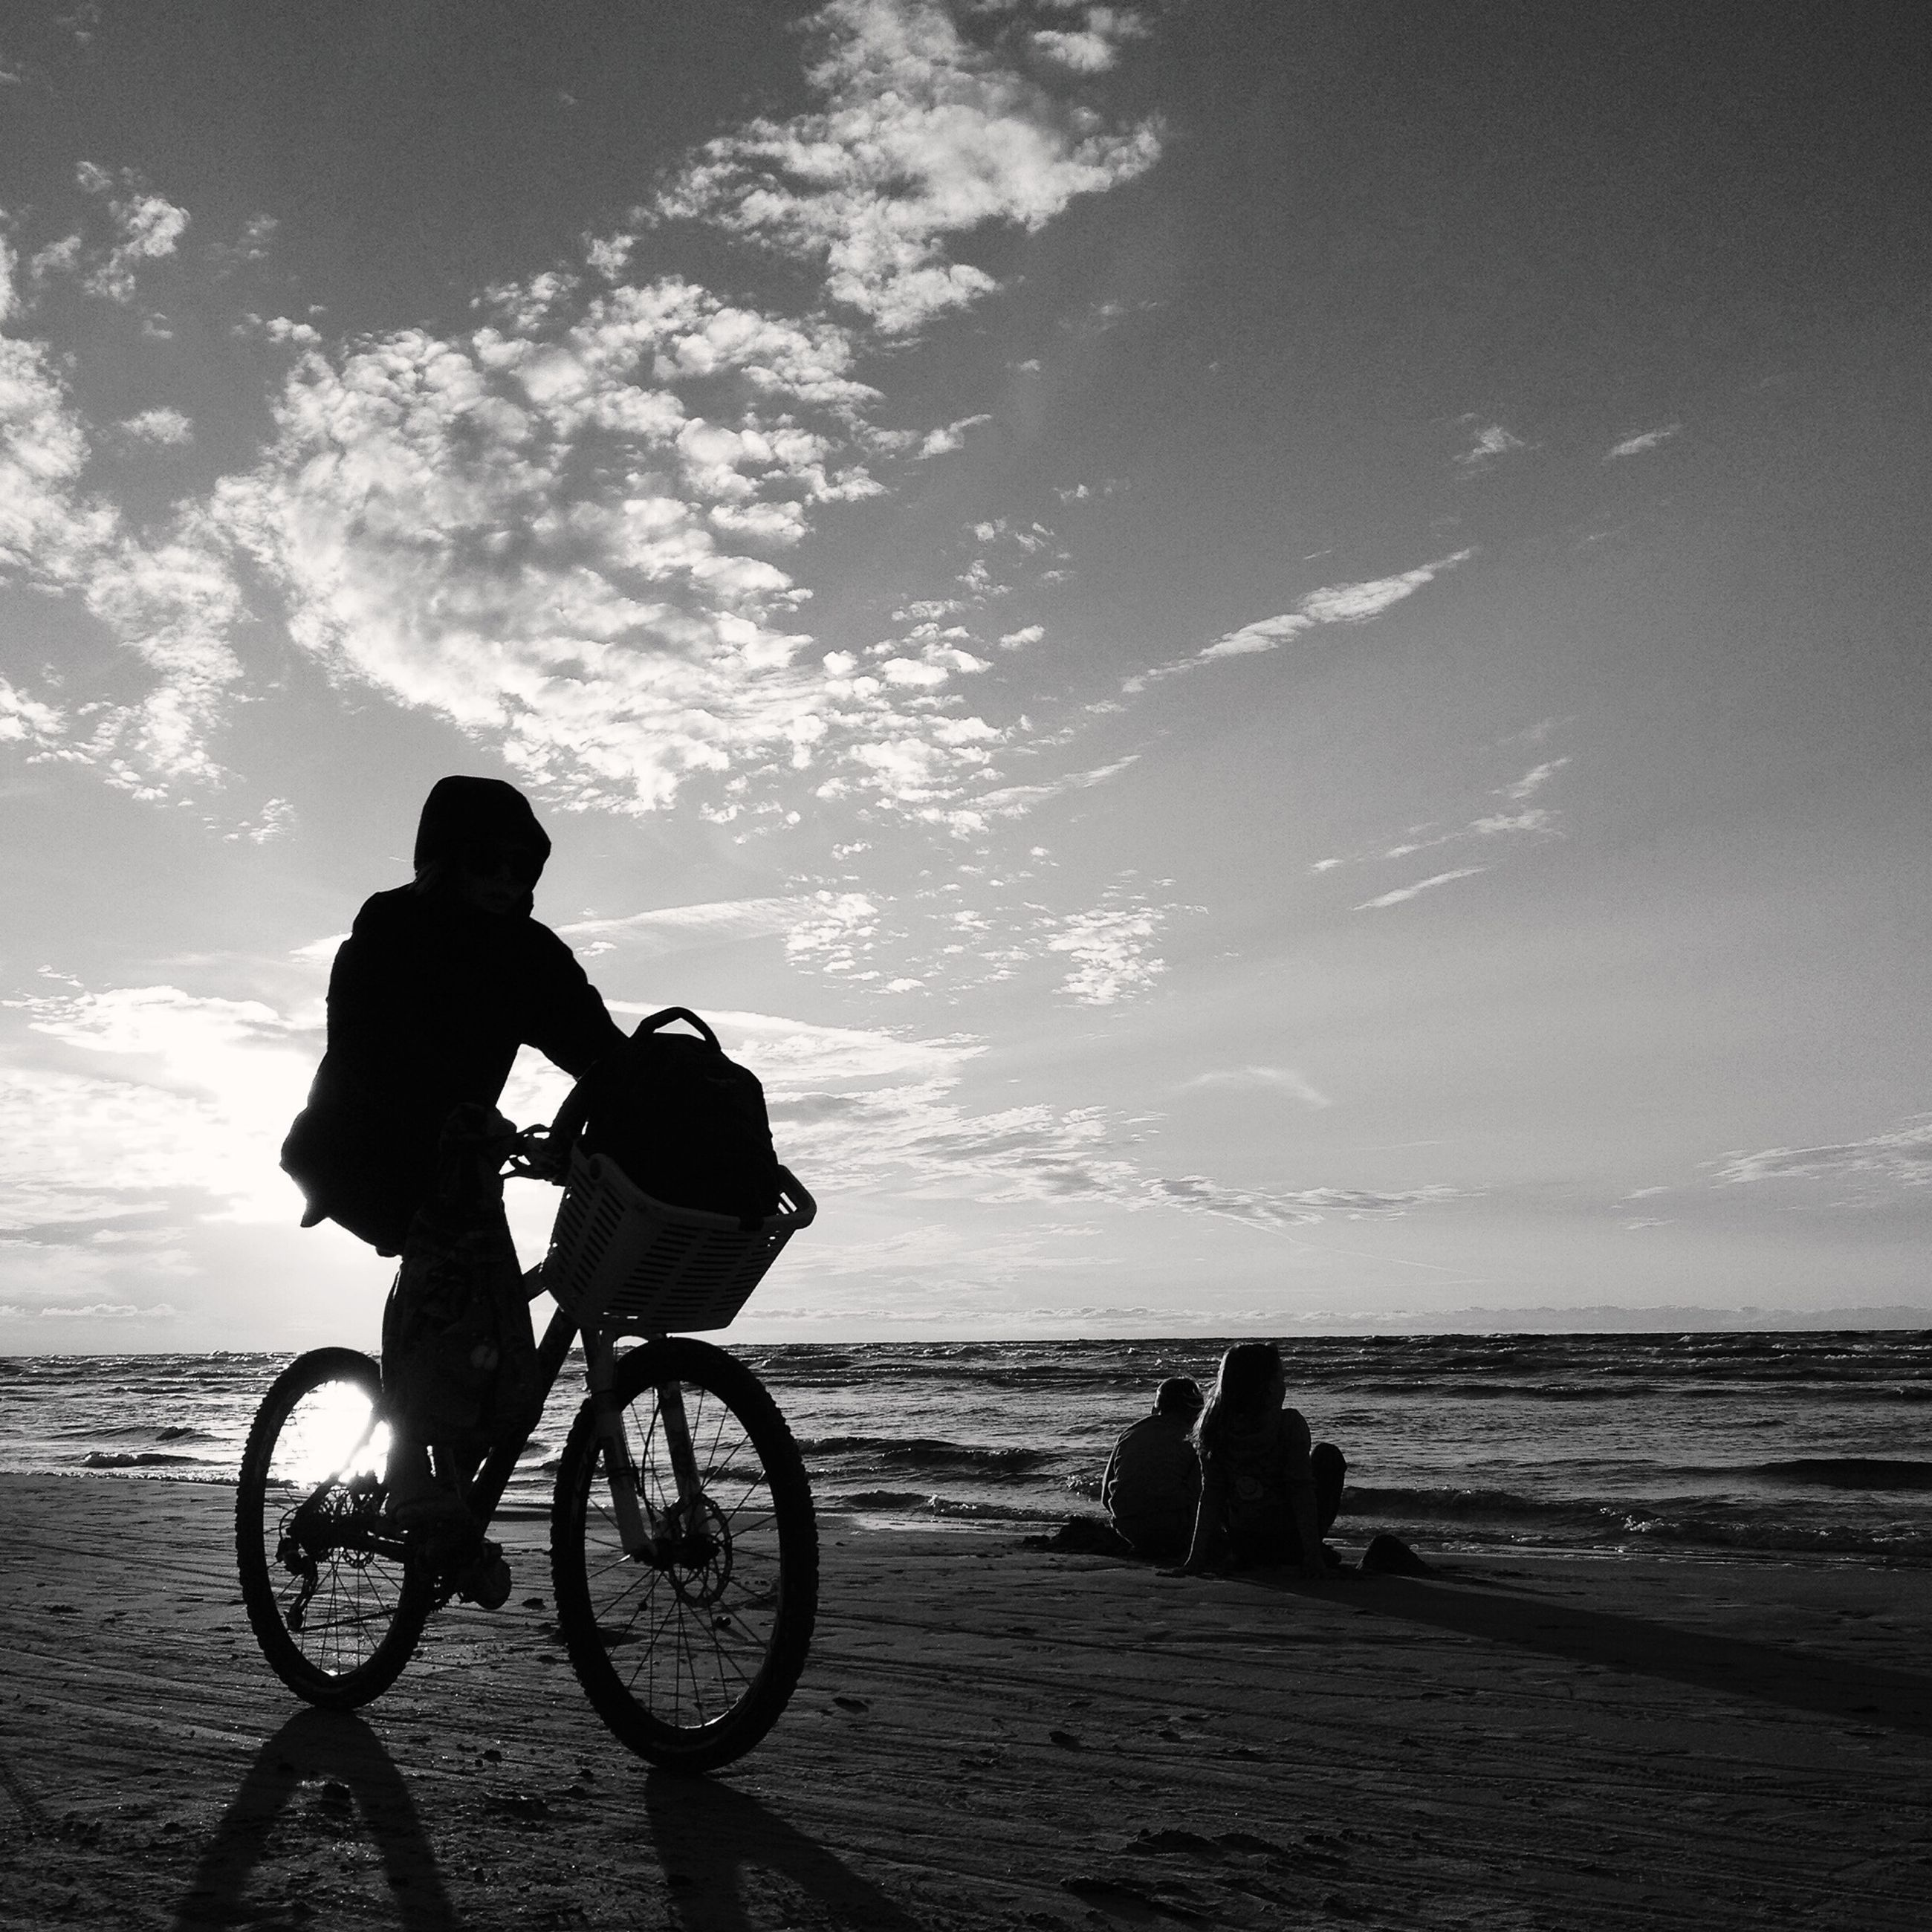 sea, bicycle, water, beach, lifestyles, men, leisure activity, silhouette, horizon over water, sky, transportation, shore, mode of transport, togetherness, full length, scenics, tranquility, land vehicle